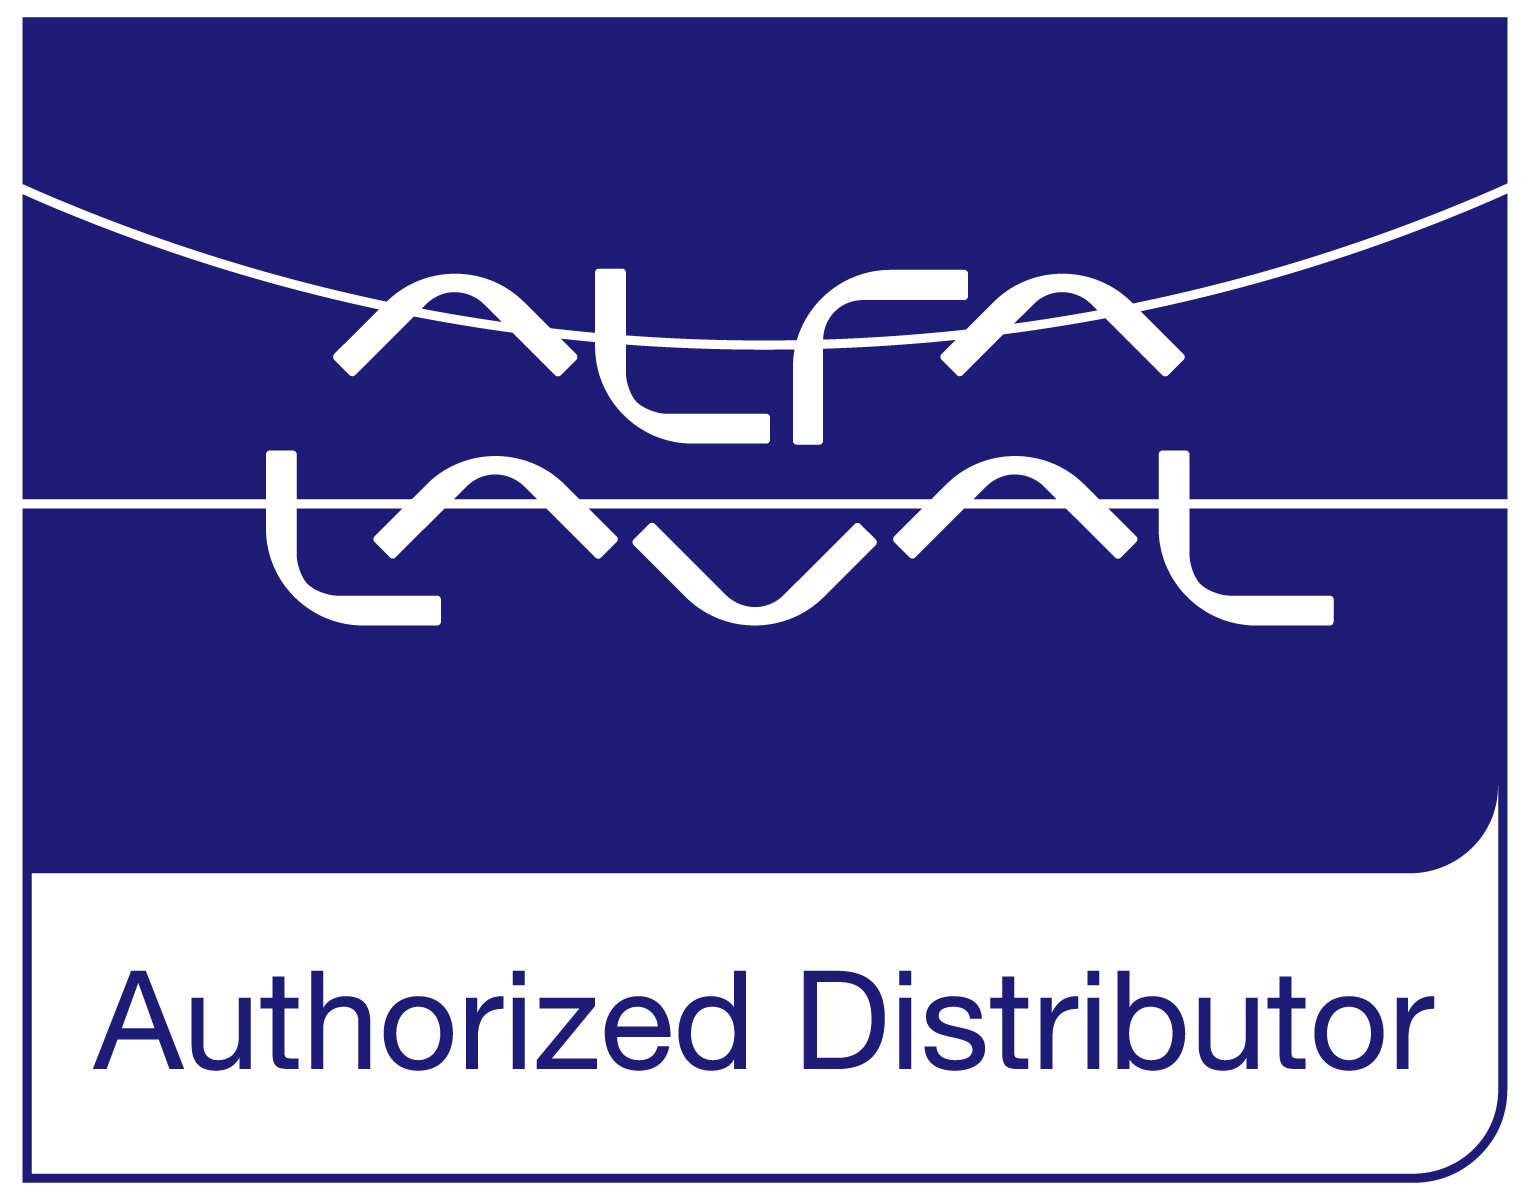 Alfa_Laval_Authorized_Distributor_RGB_high_res.jpg